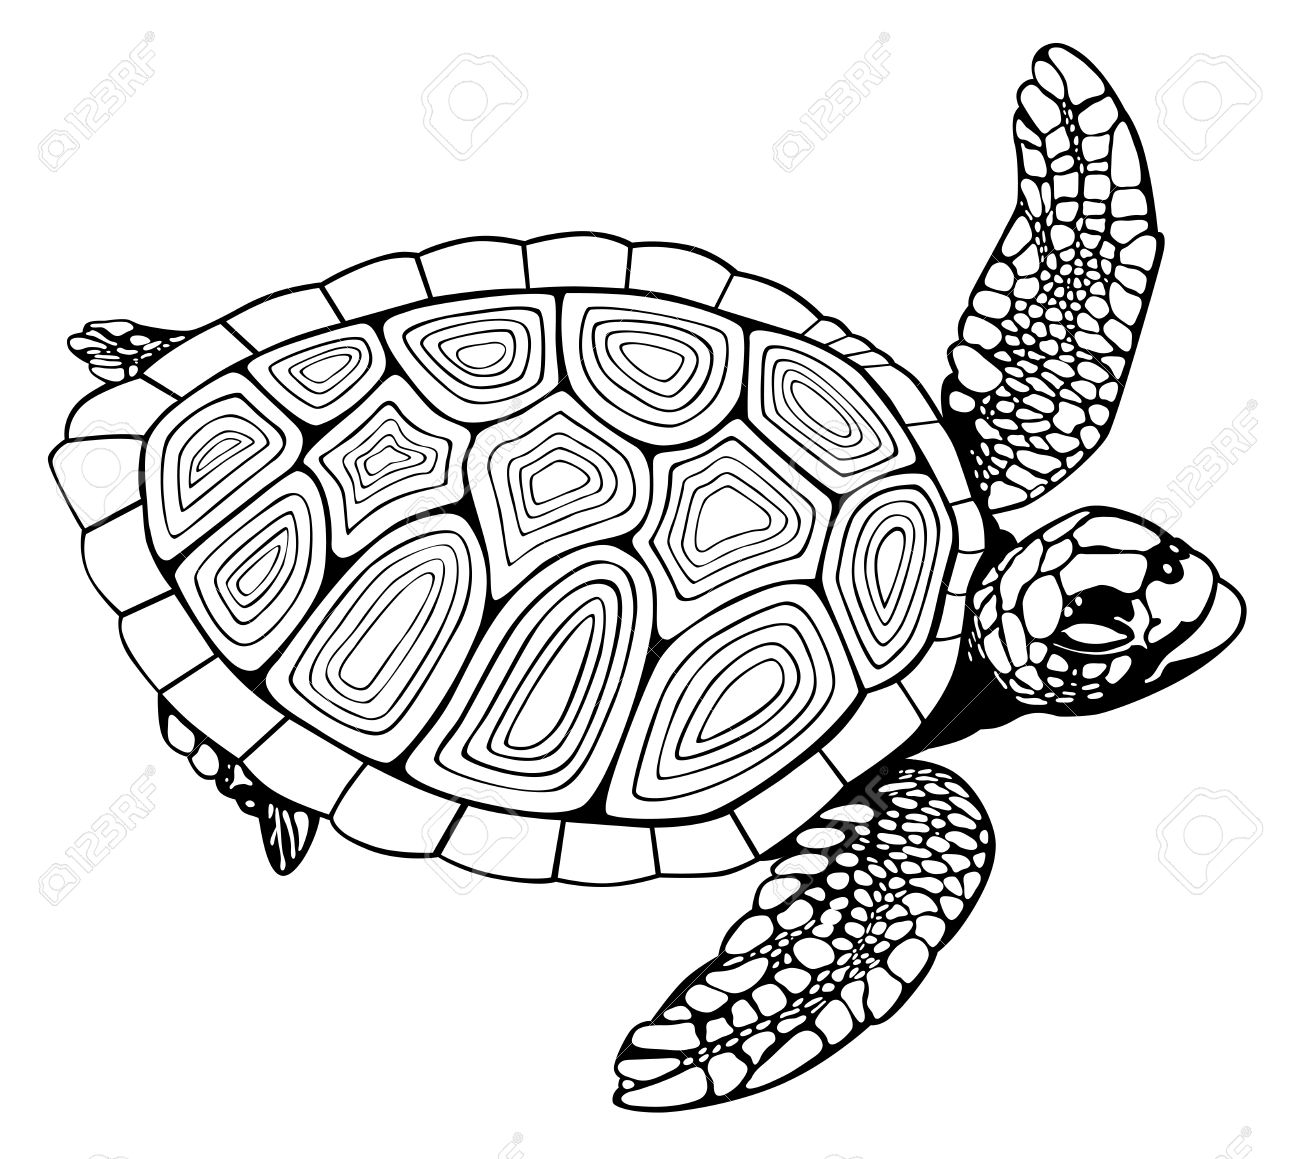 Coloring Book Turtle Royalty Free Cliparts, Vectors, And Stock ...